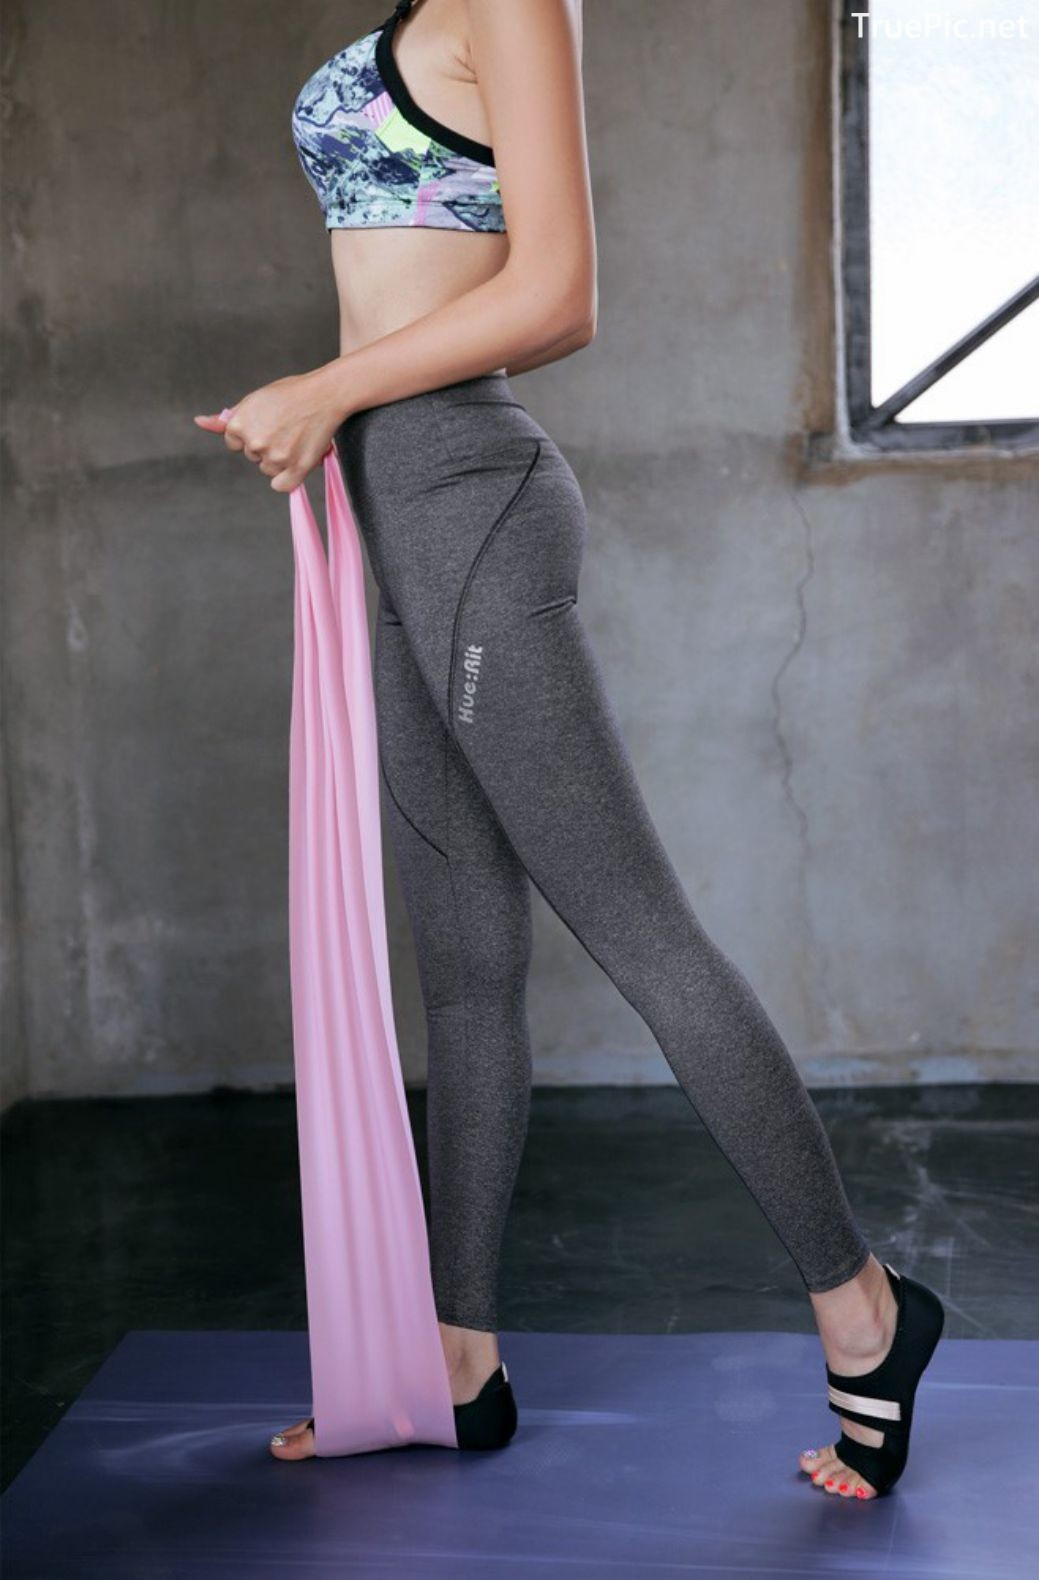 Image-Korean-Fashion-Model-Jin-Hee-Fitness-Set-Photoshoot-Collection-TruePic.net- Picture-3